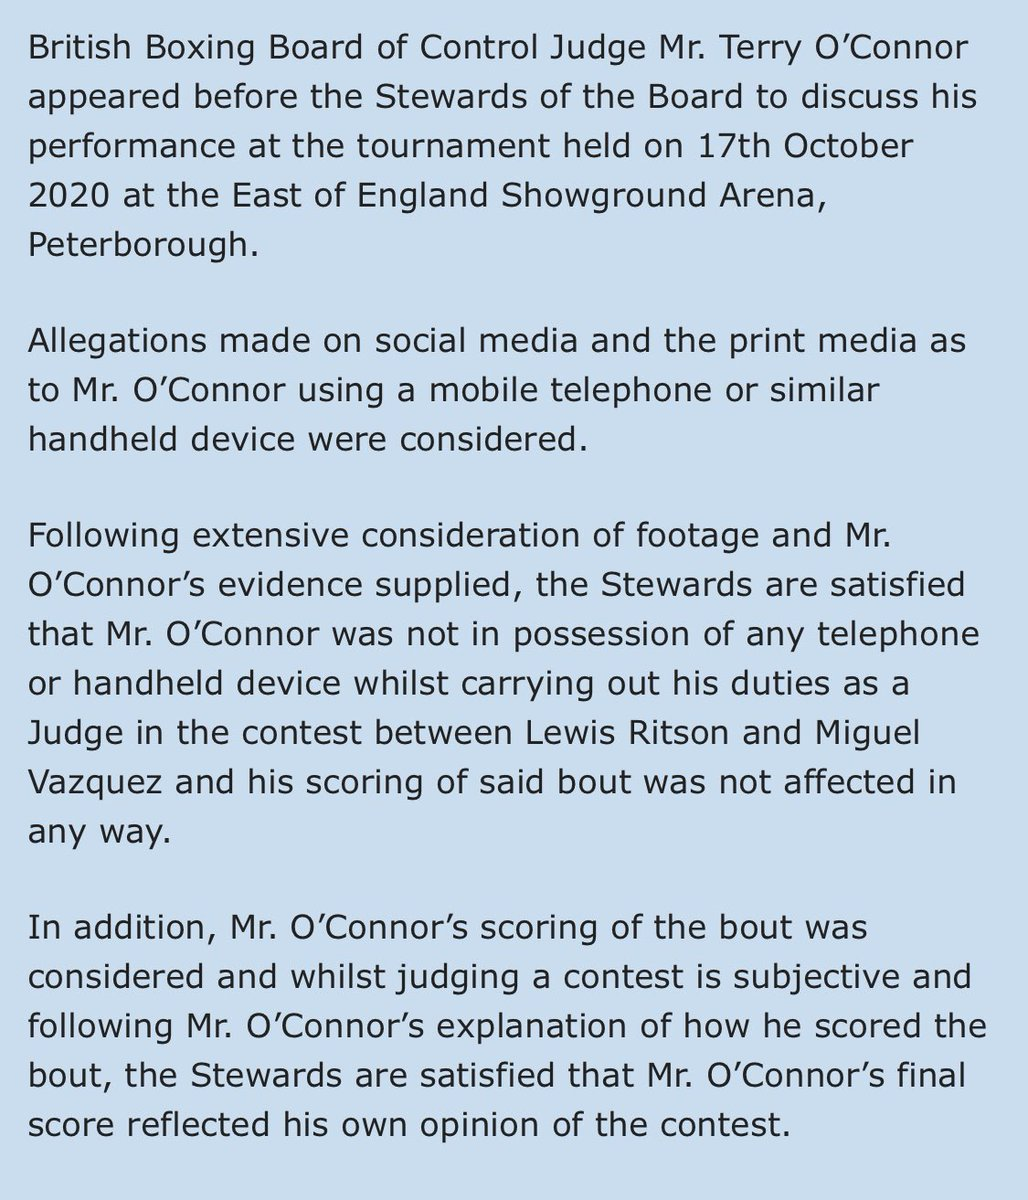 The BBBofC ruled that Terry O'Connor  was not in possession of a phone or handheld device after a picture of him not watching the Lewis Ritson vs. Miguel Vazquez fight holding something surfaced on social media. BBBofC said it was satisfied with O'Connor's judging and reasoning. https://t.co/C8oy2umMAc